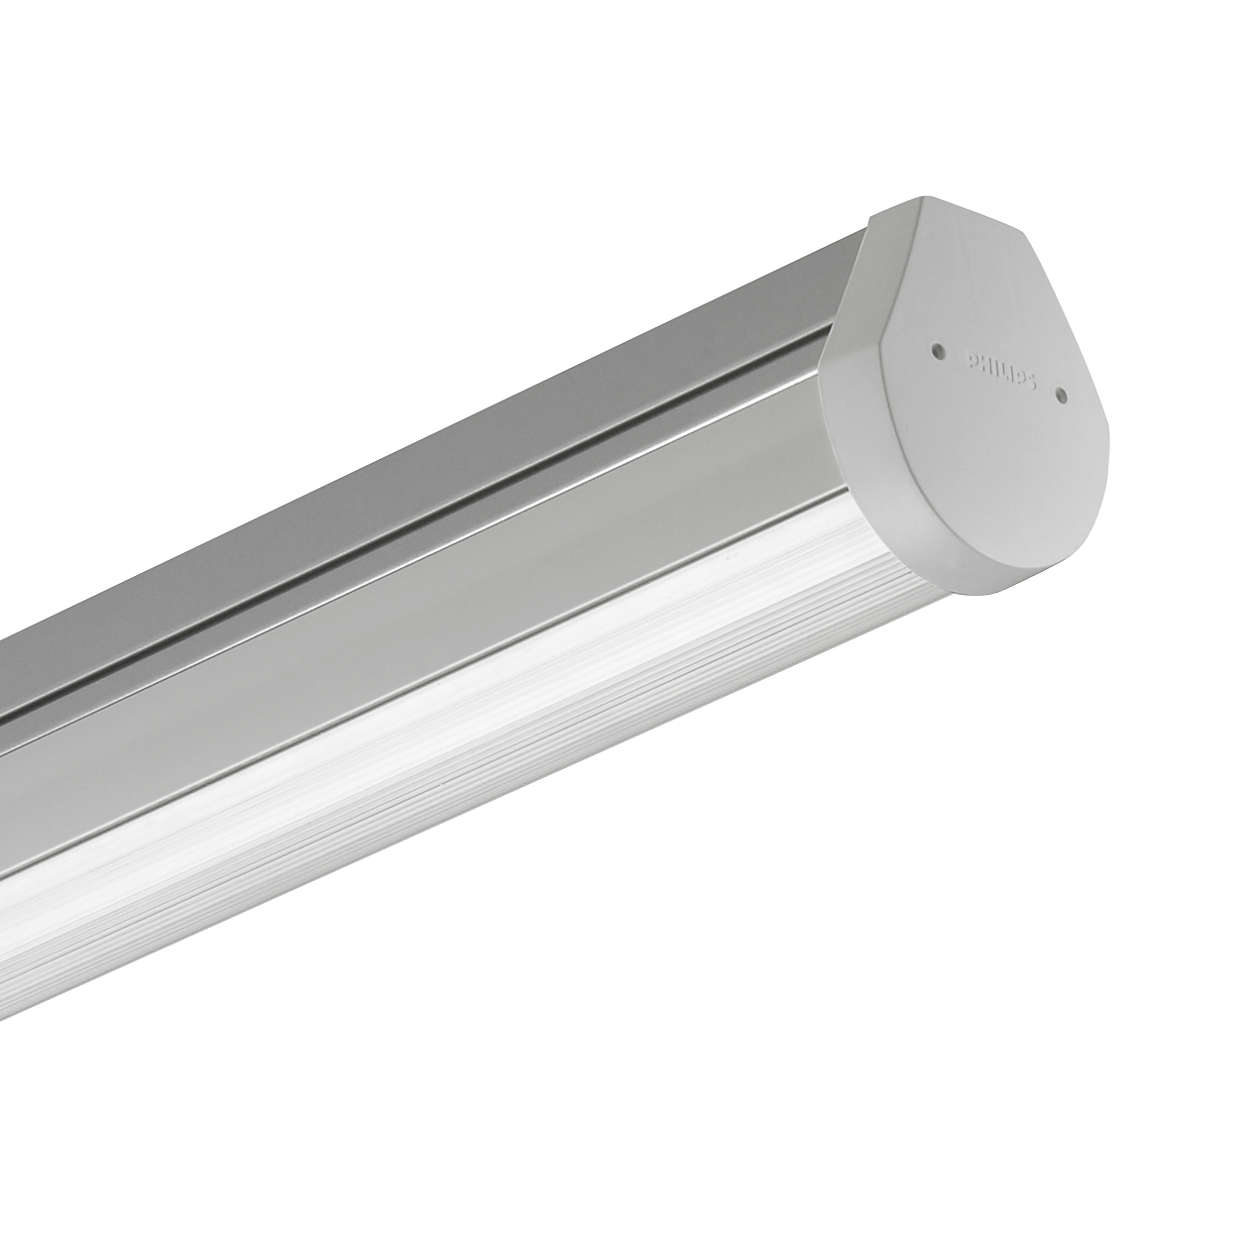 Maxos LED Performer – efficient and precise line lighting